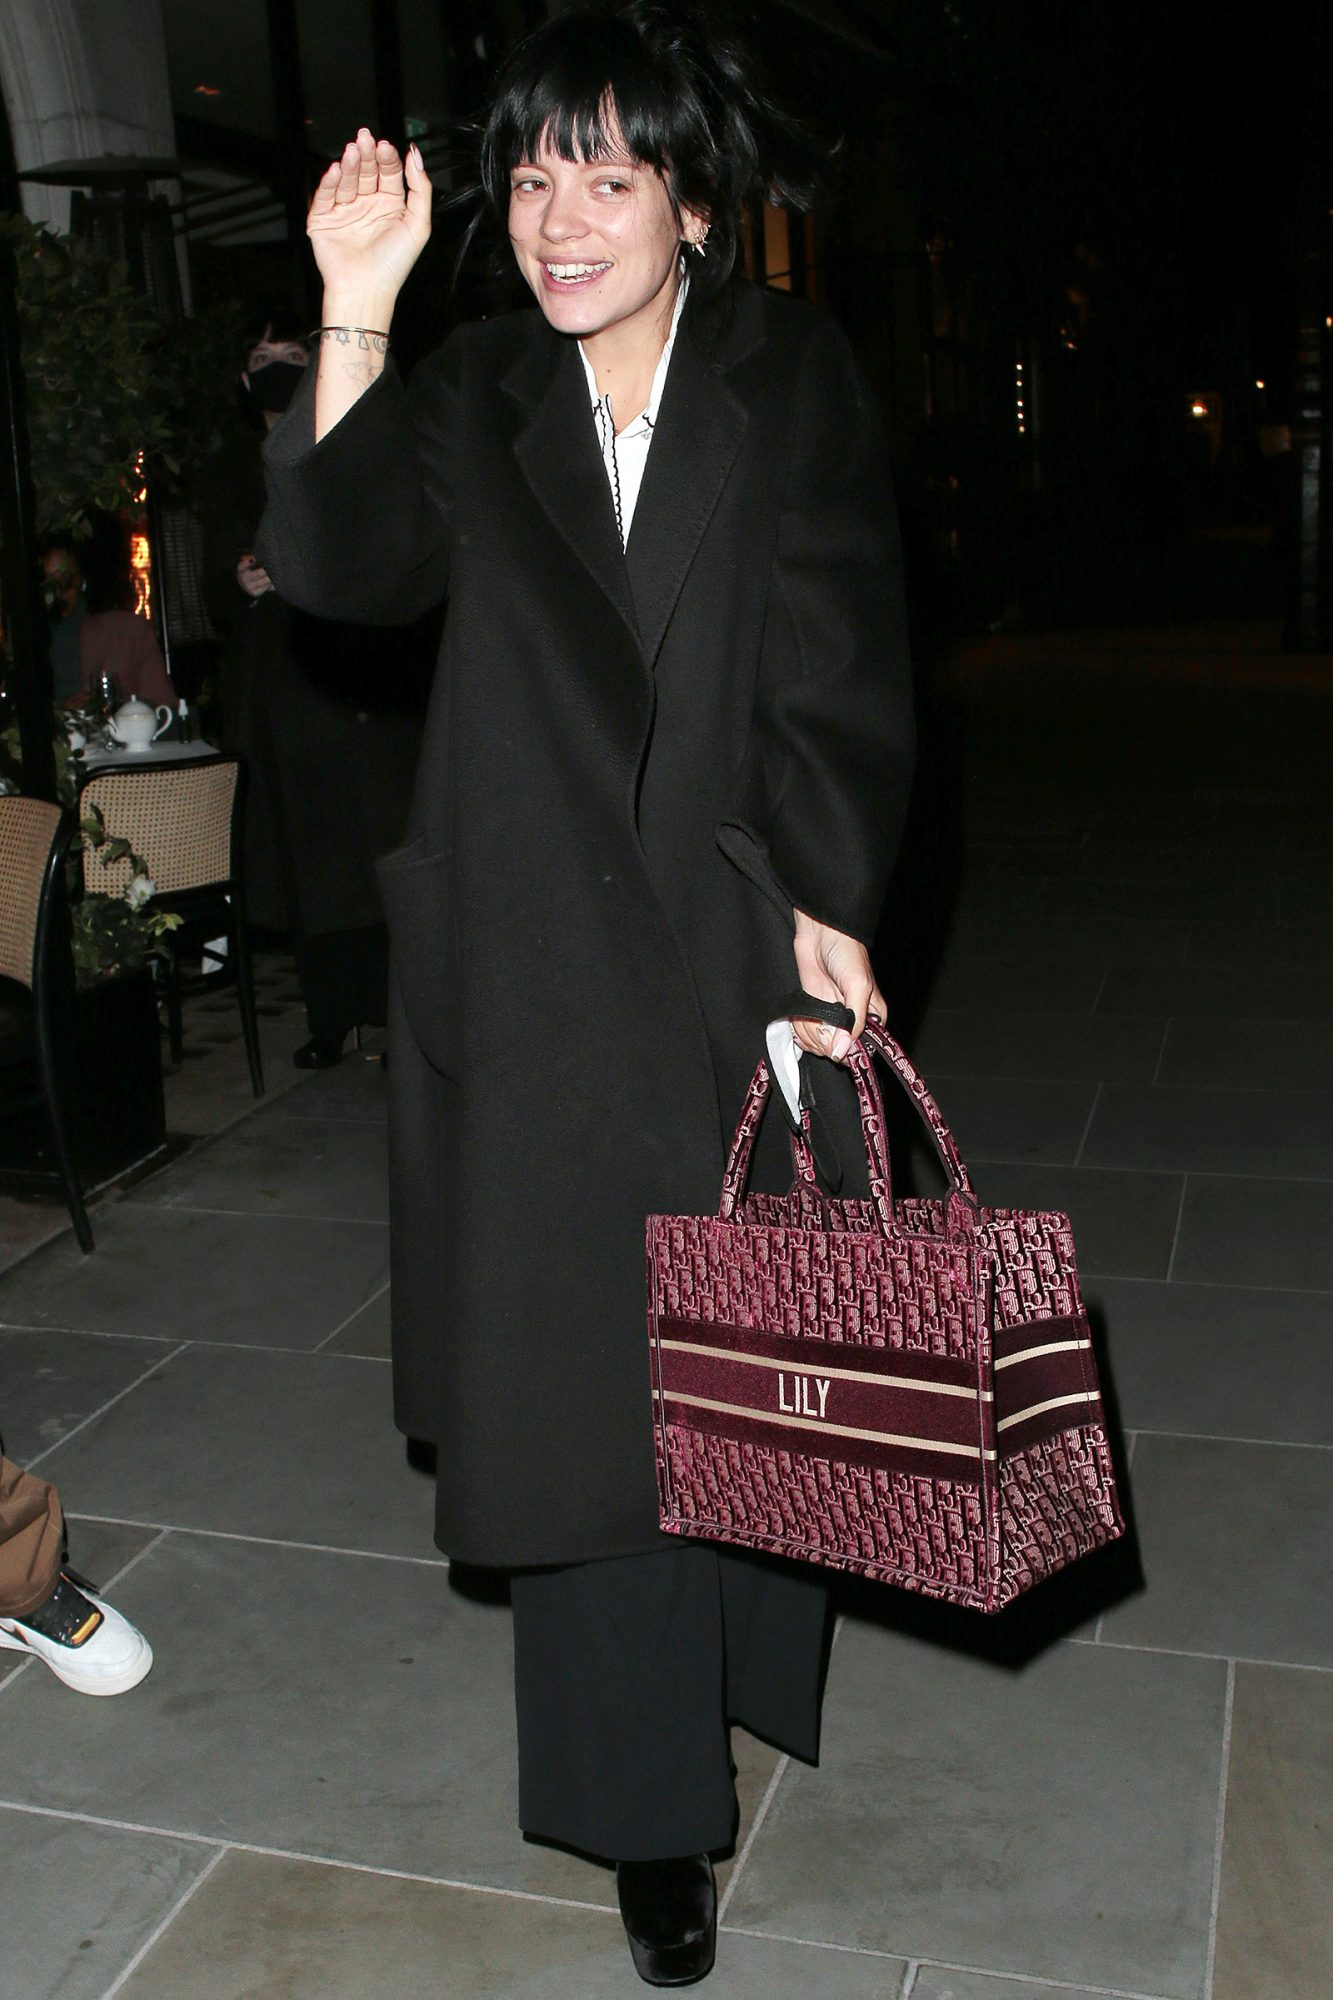 Lilly Allen seen on a night out with a friend leaving Scott's restaurant wearing a Christian Dior bag with her name embroidered on it on October 19, 2020